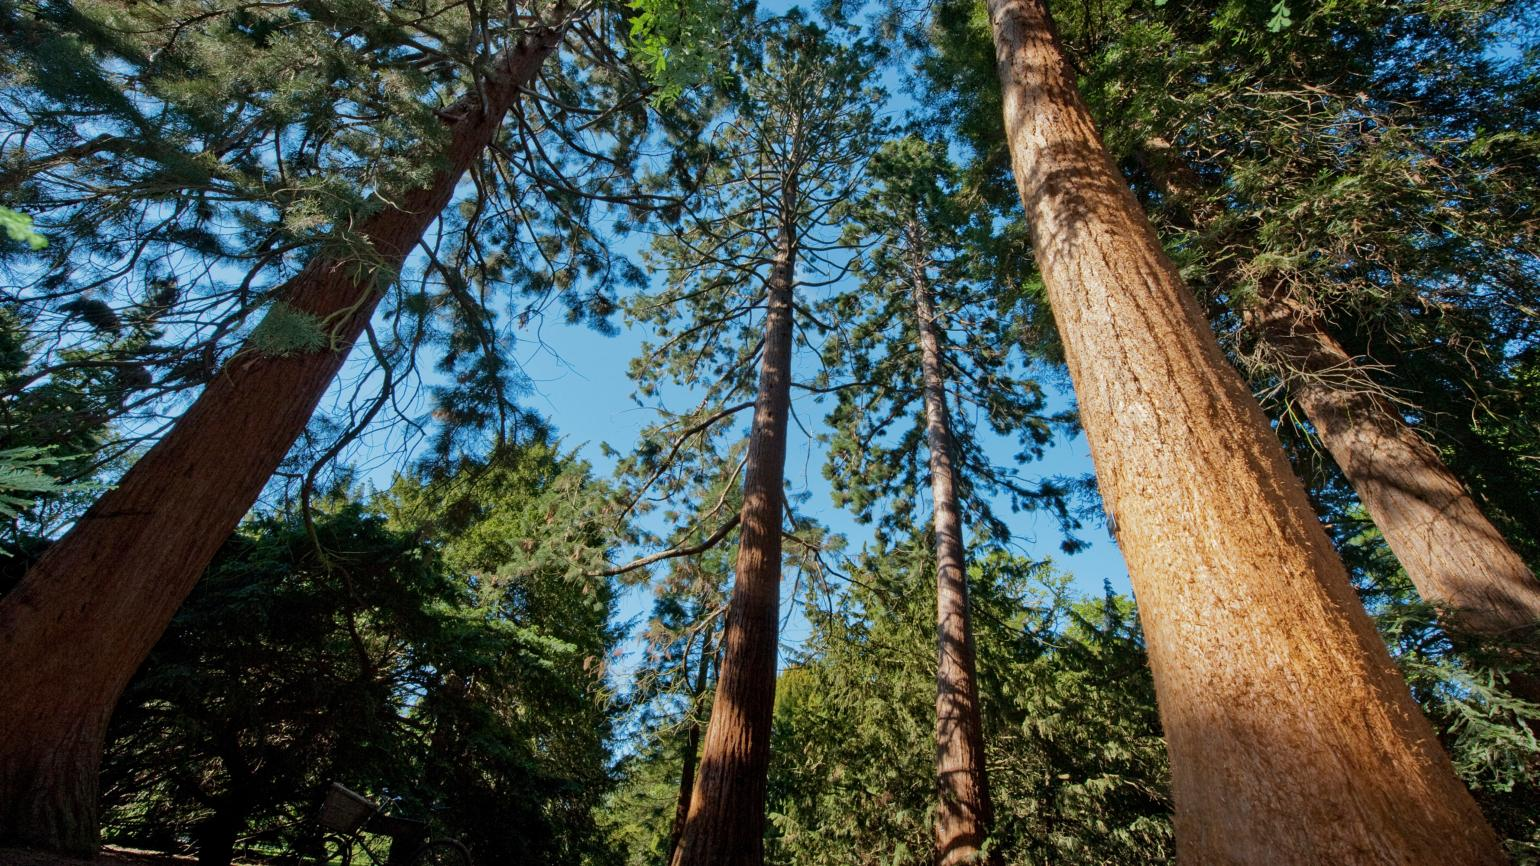 Giant redwoods in Kew's Redwood Grove